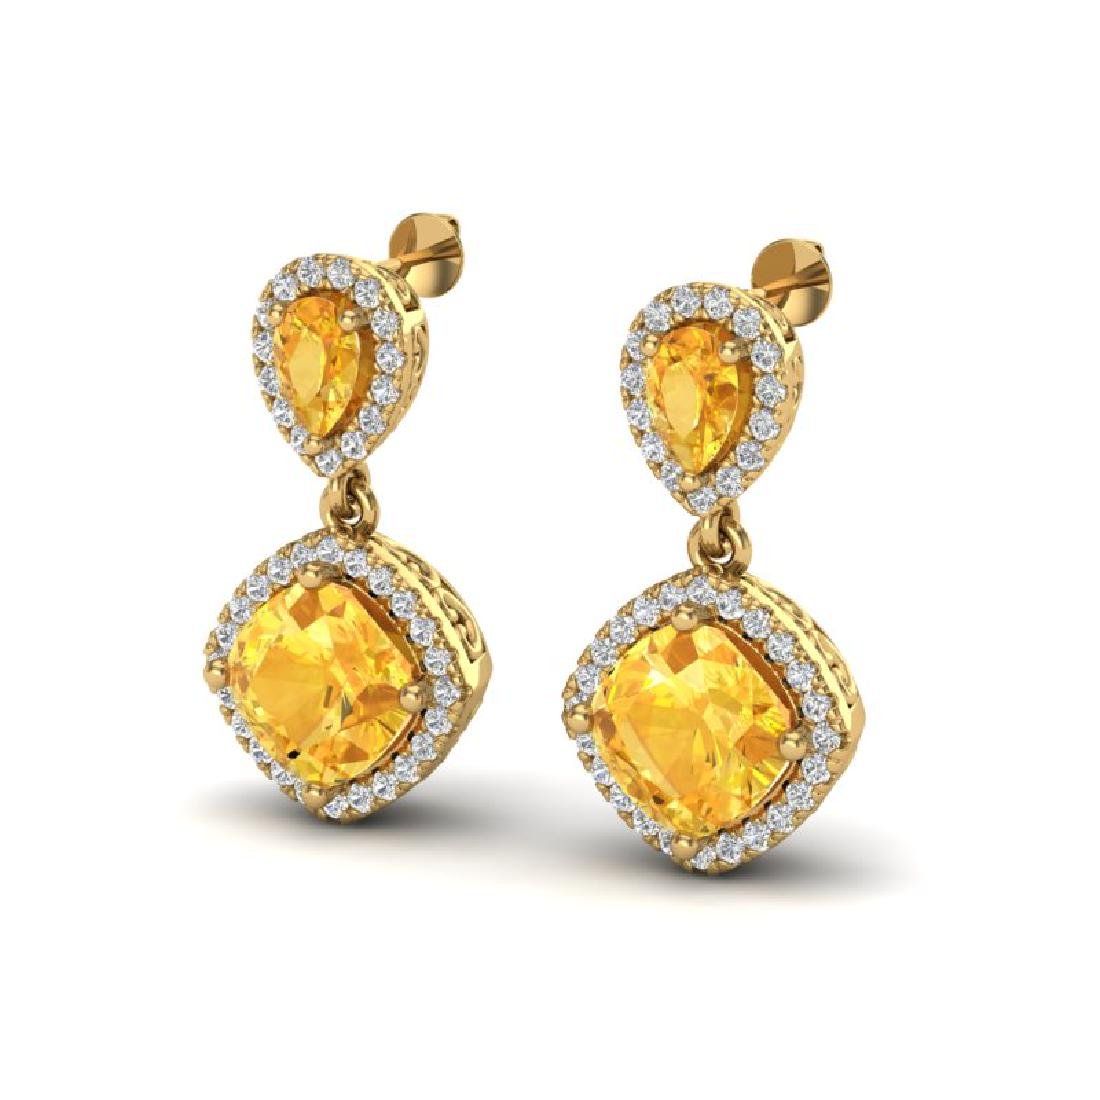 5 CTW Citrine & Micro Pave VS/SI Diamond Earrings